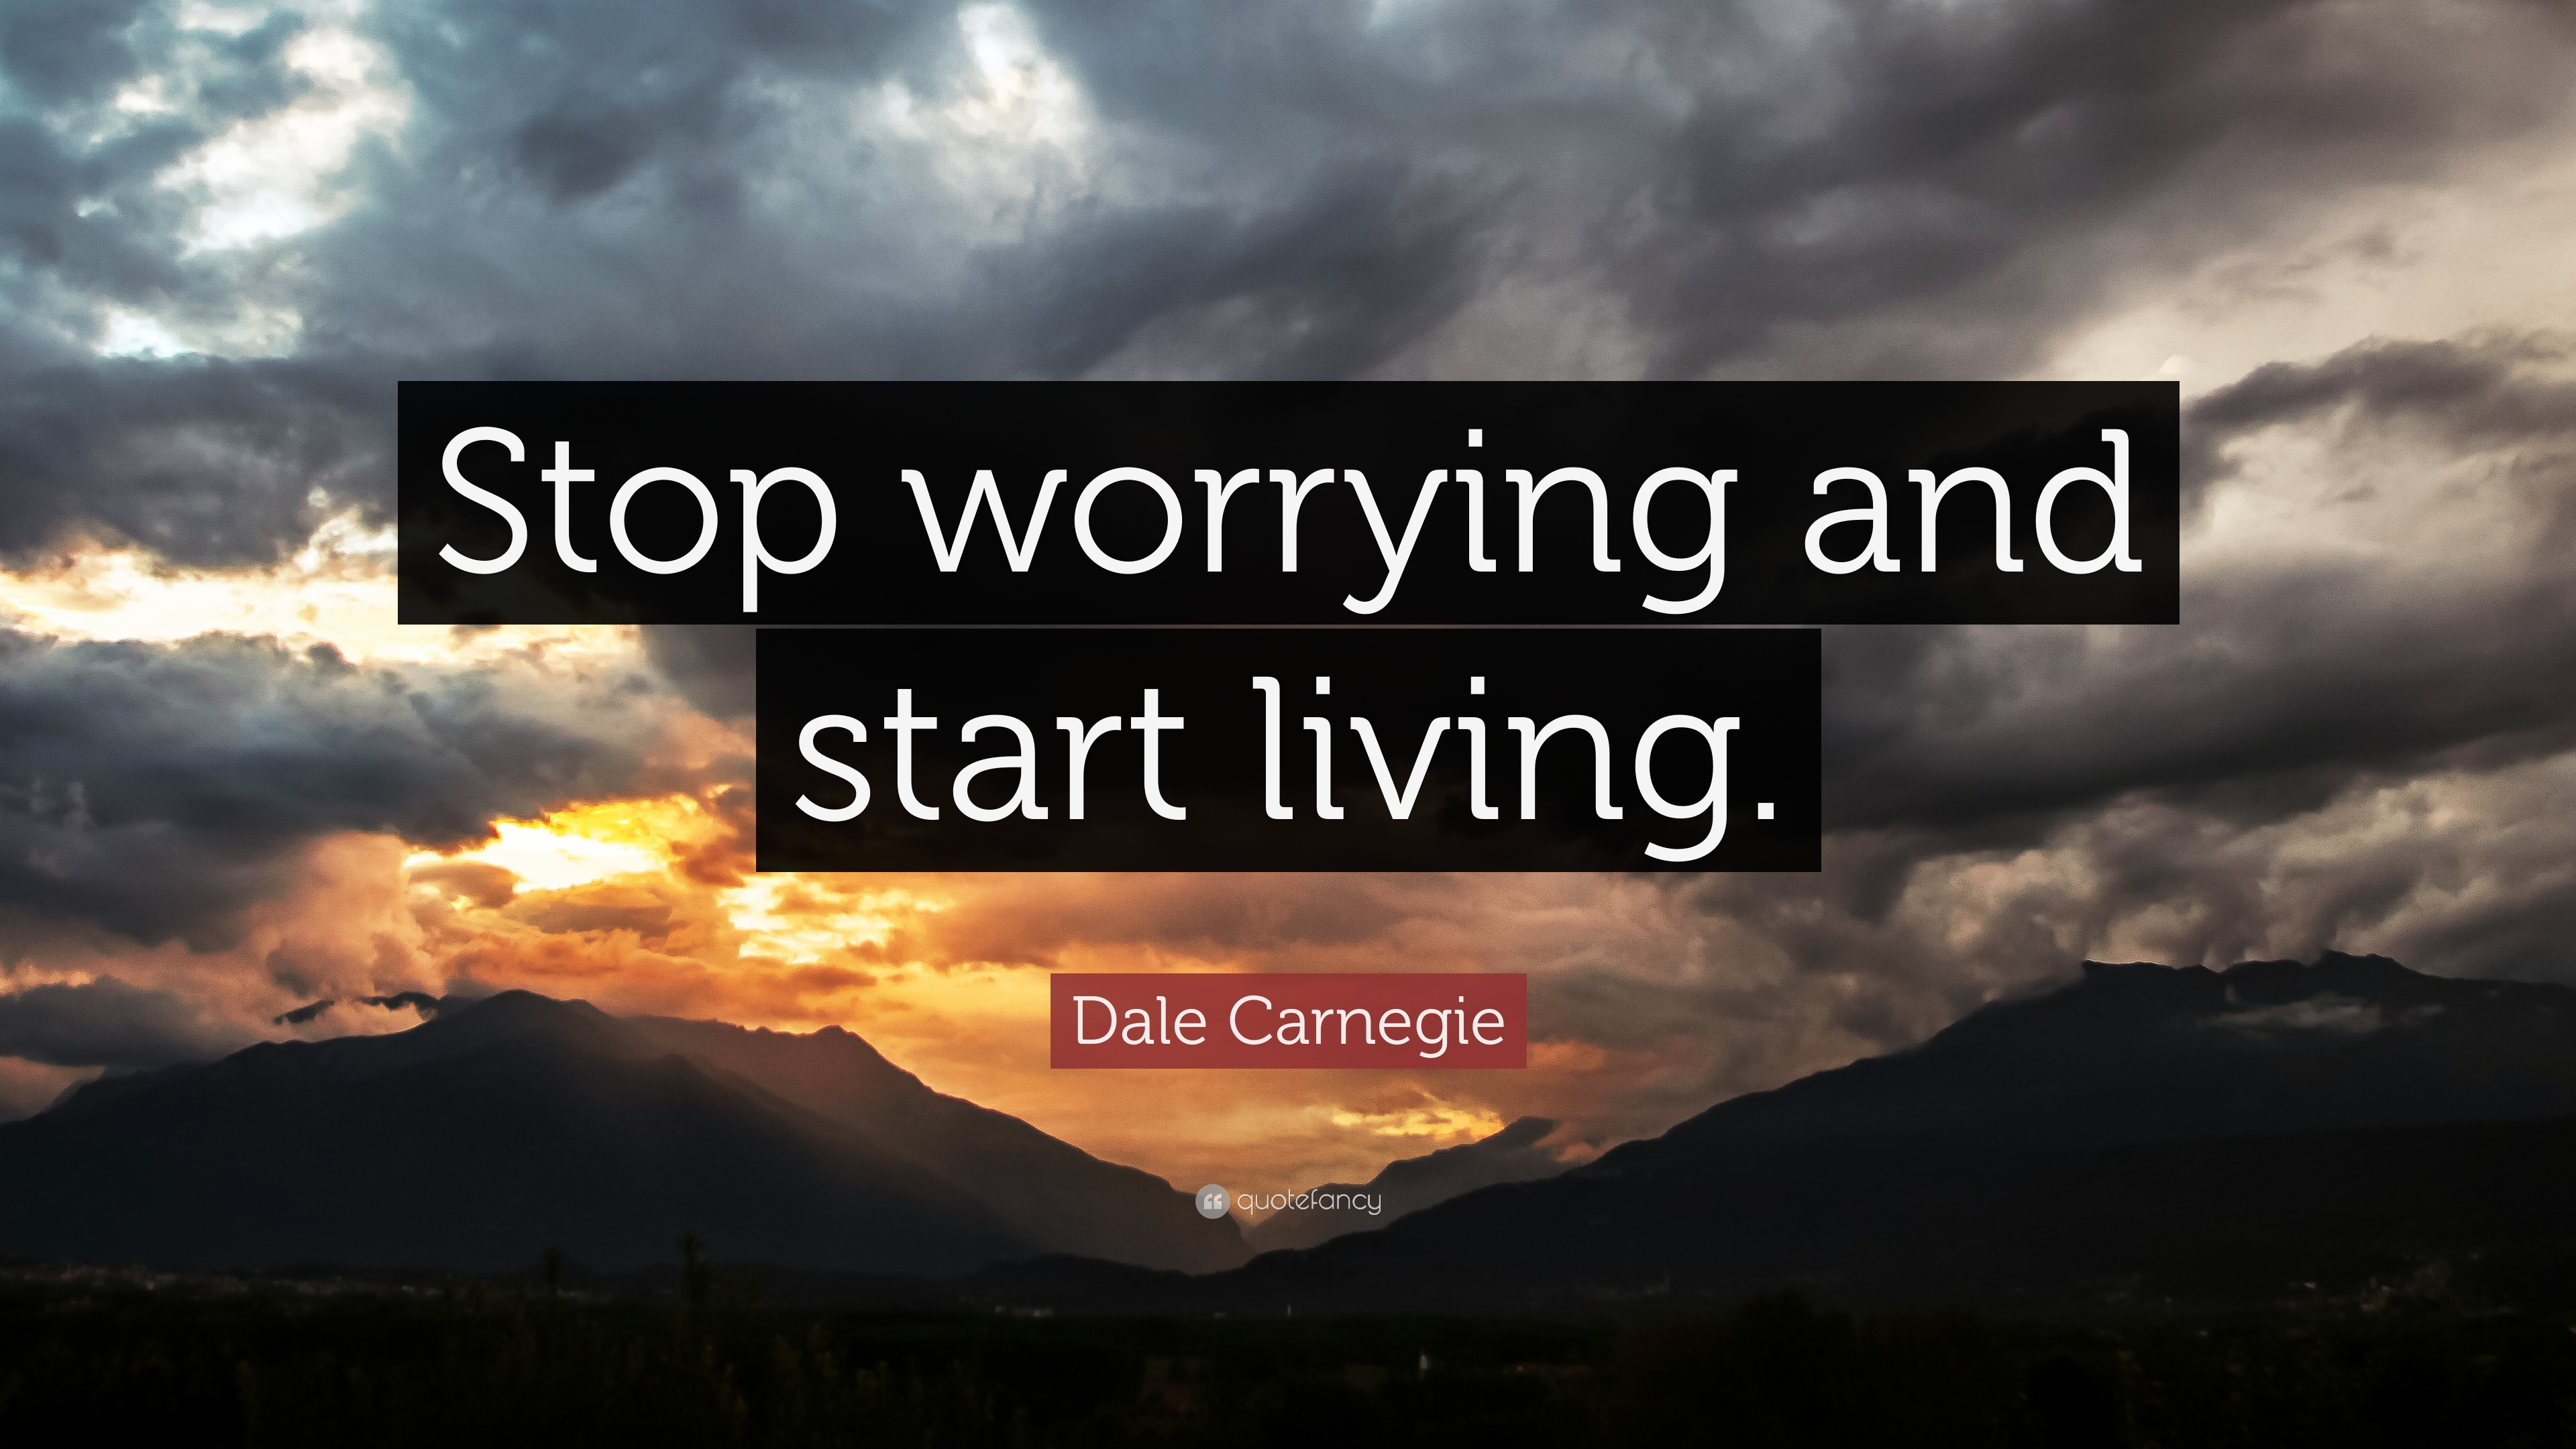 Dale Carnegie Quotes (100 Wallpapers)